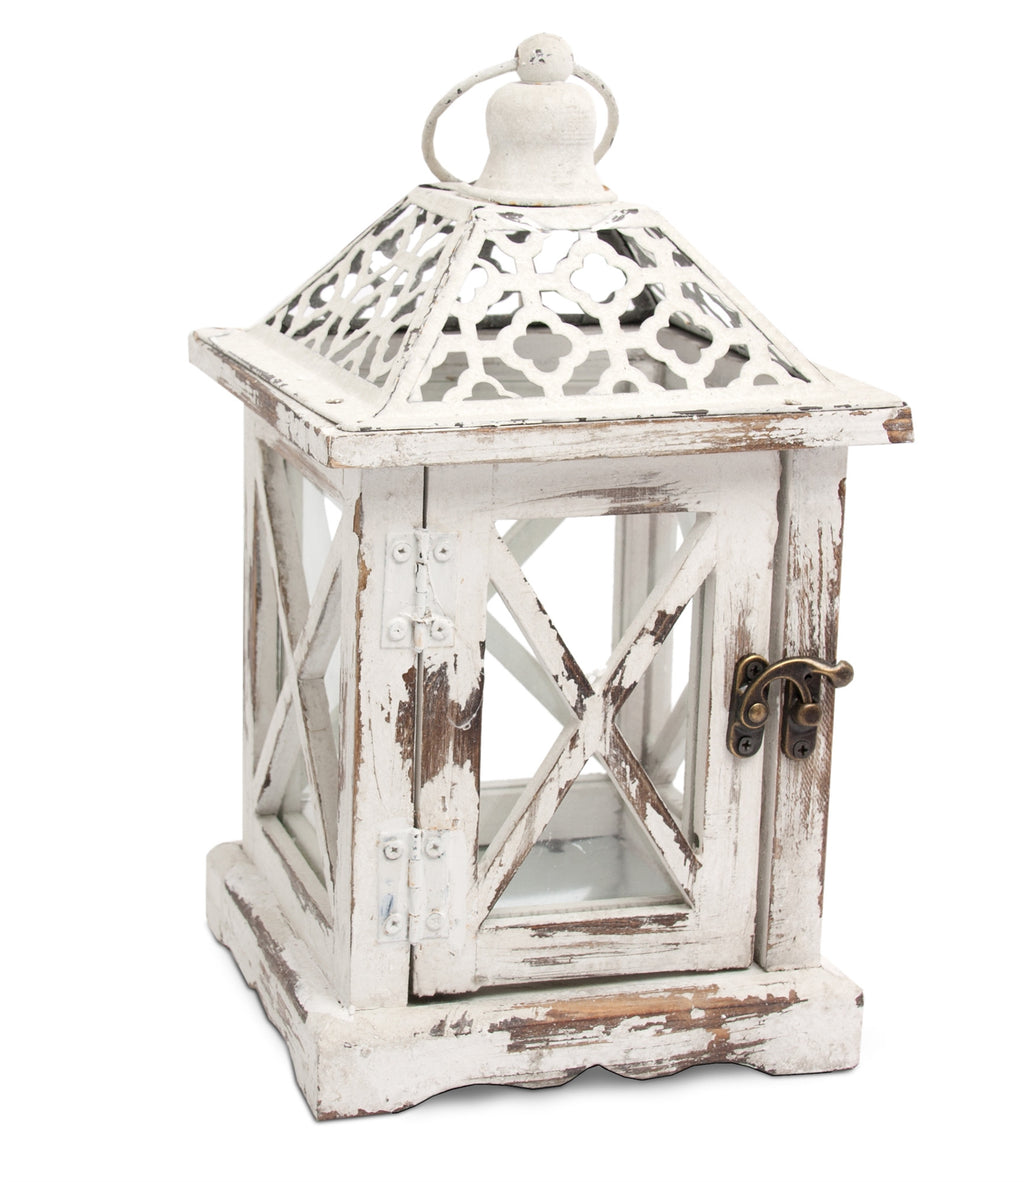 Wooden Lantern - From Heart and Home